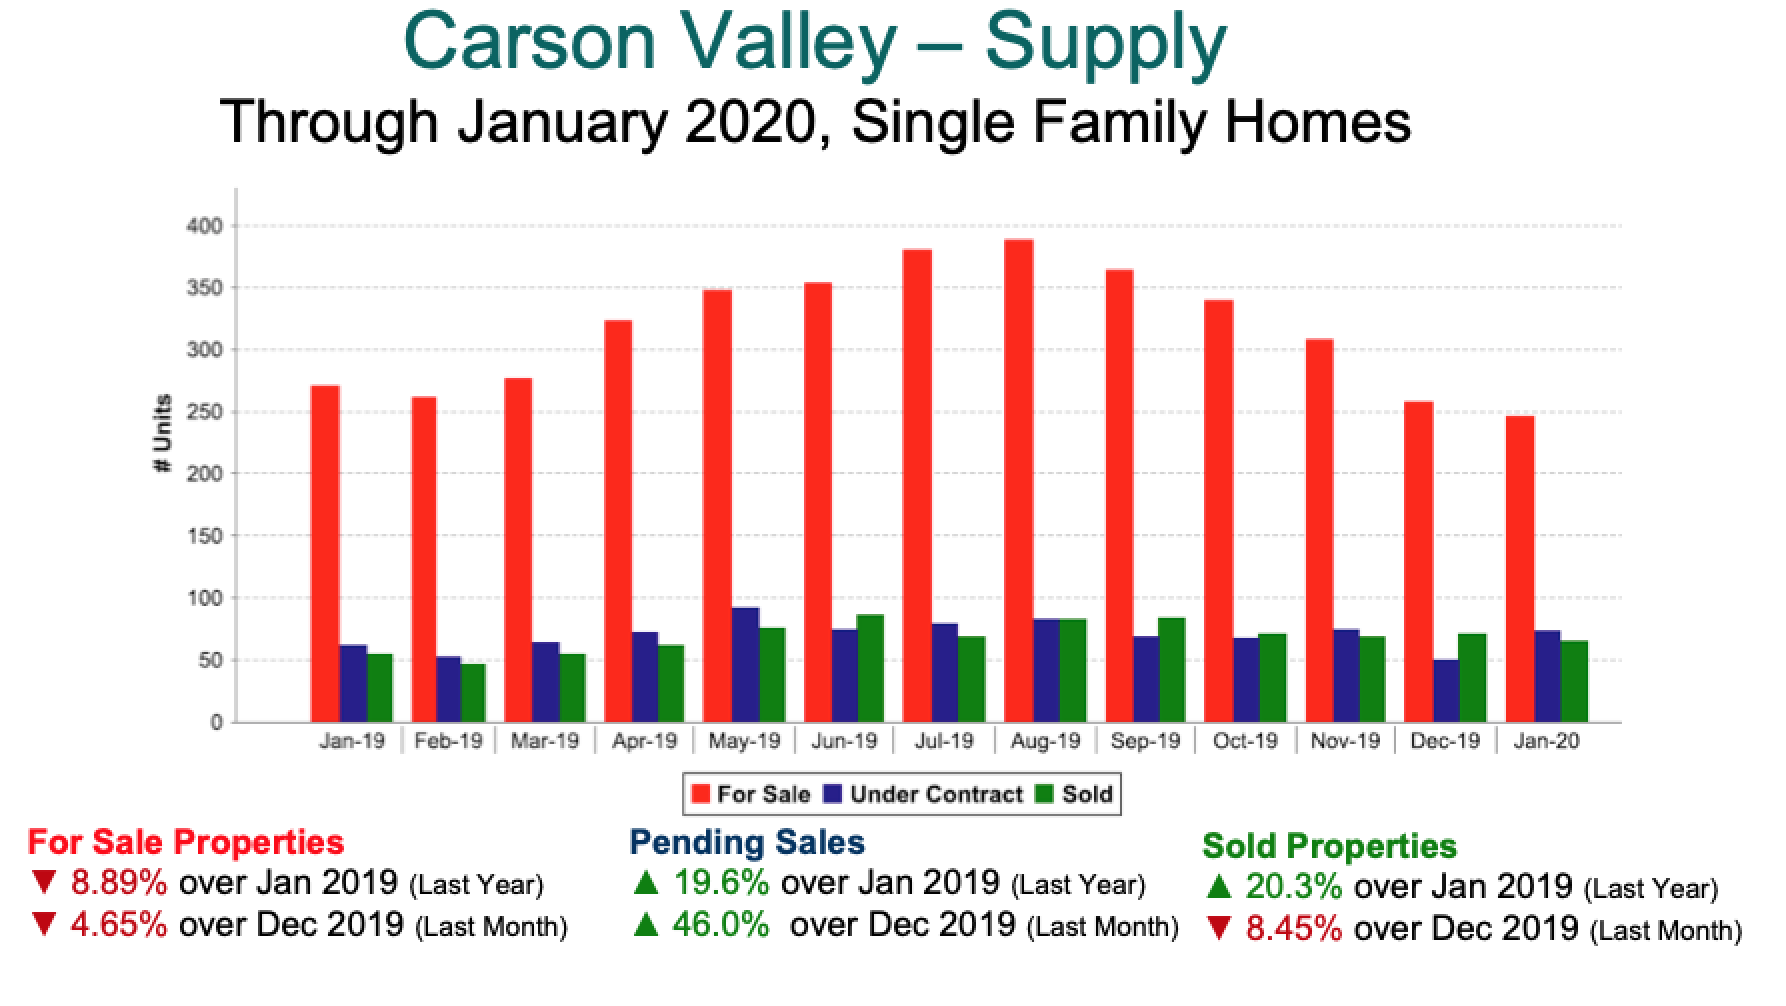 Carson Valley Pending Sales Trends 2019-Jan 2020